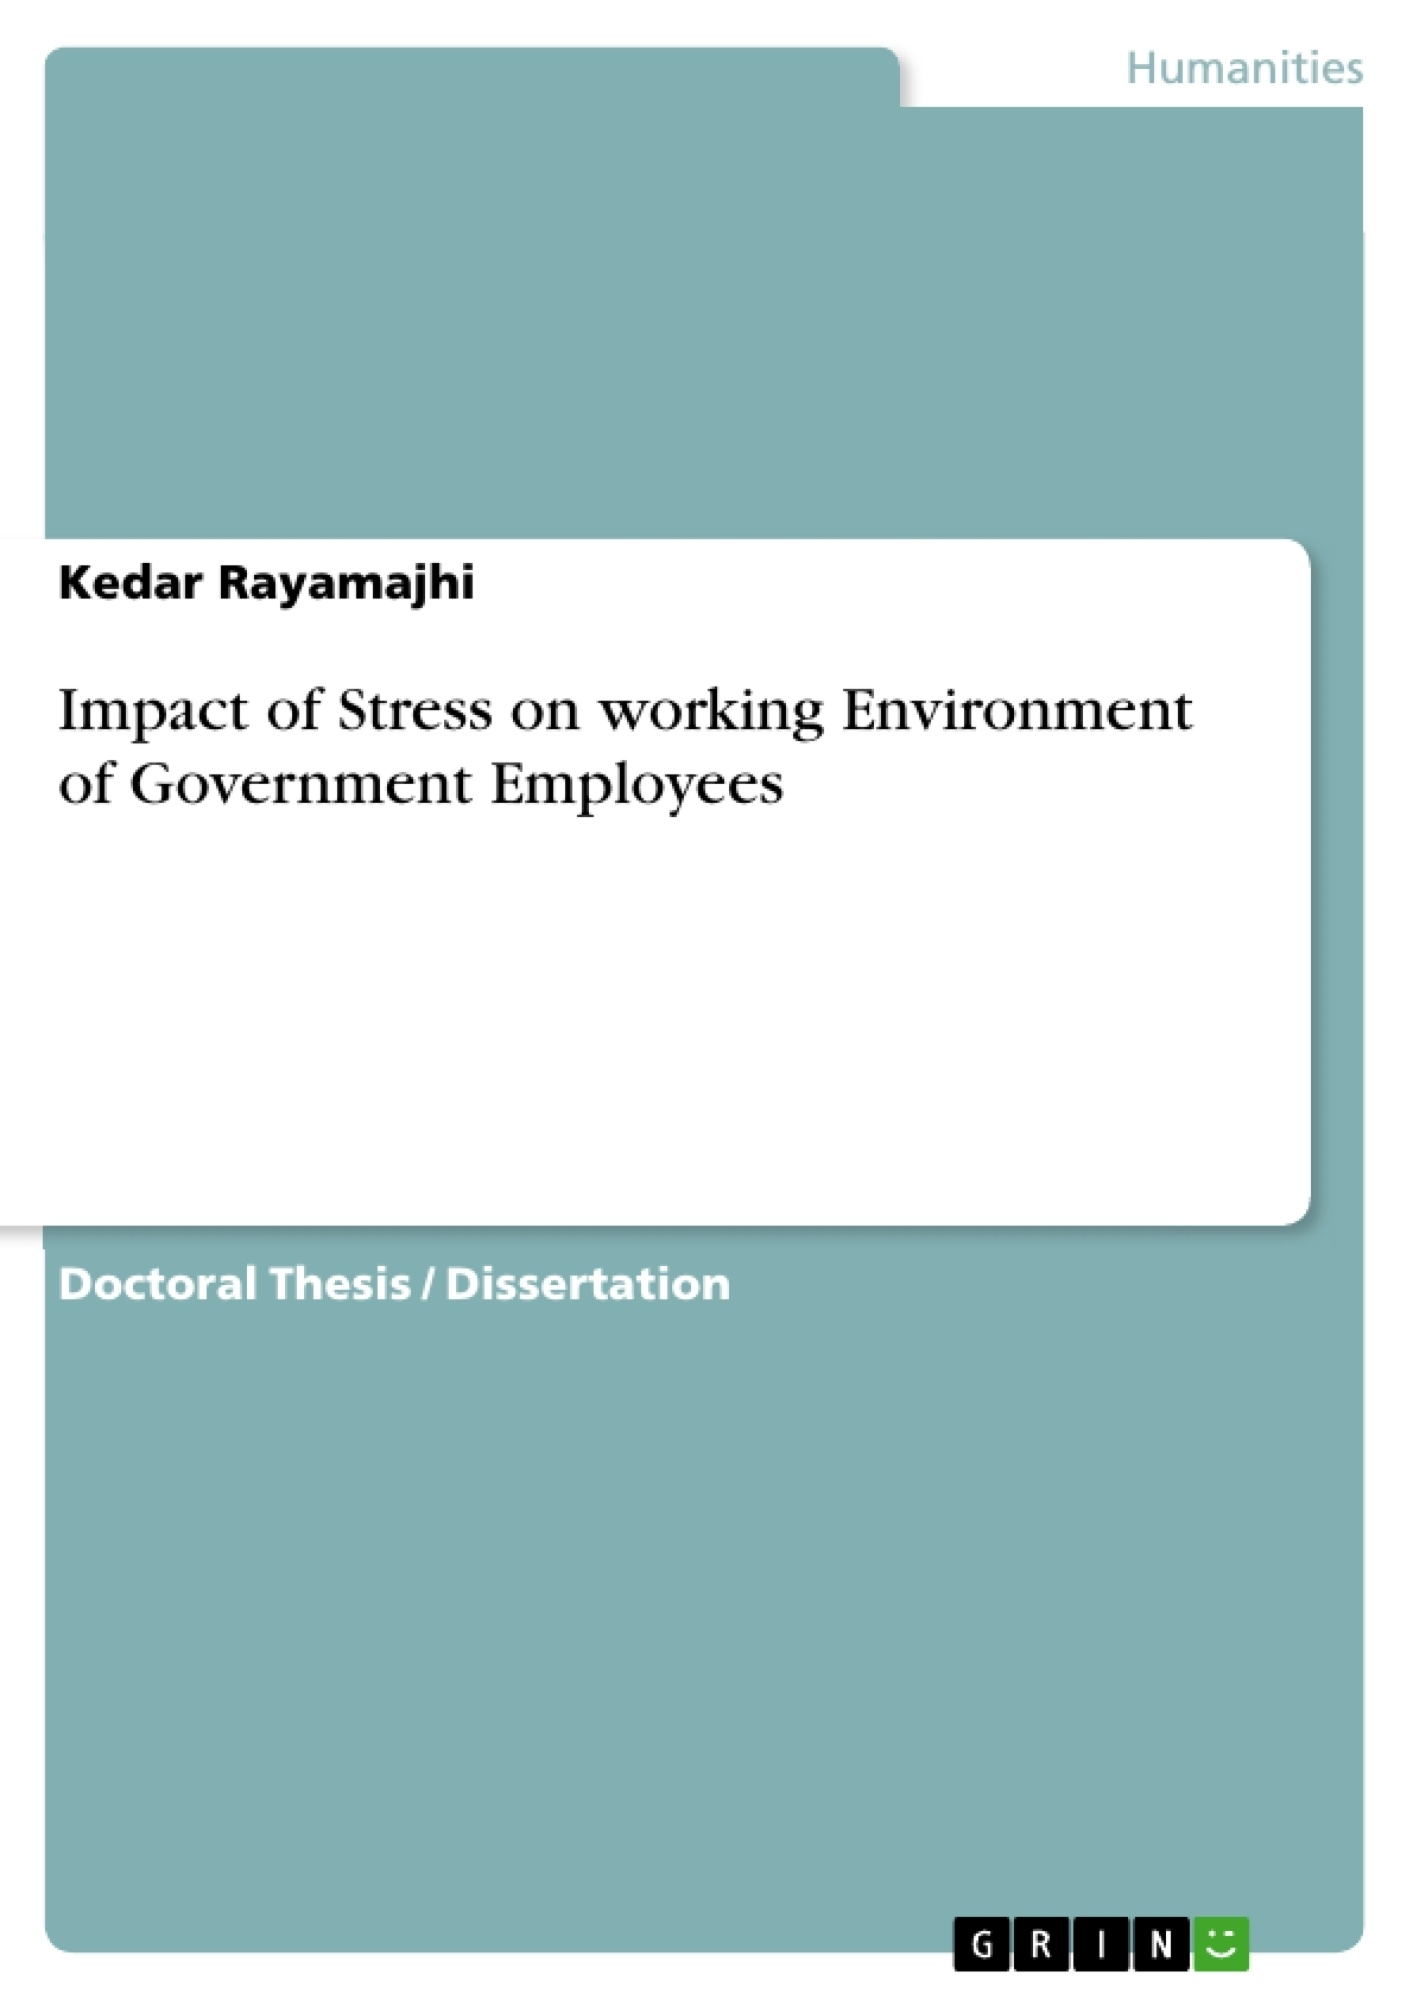 Title: Impact of Stress on working Environment of Government Employees